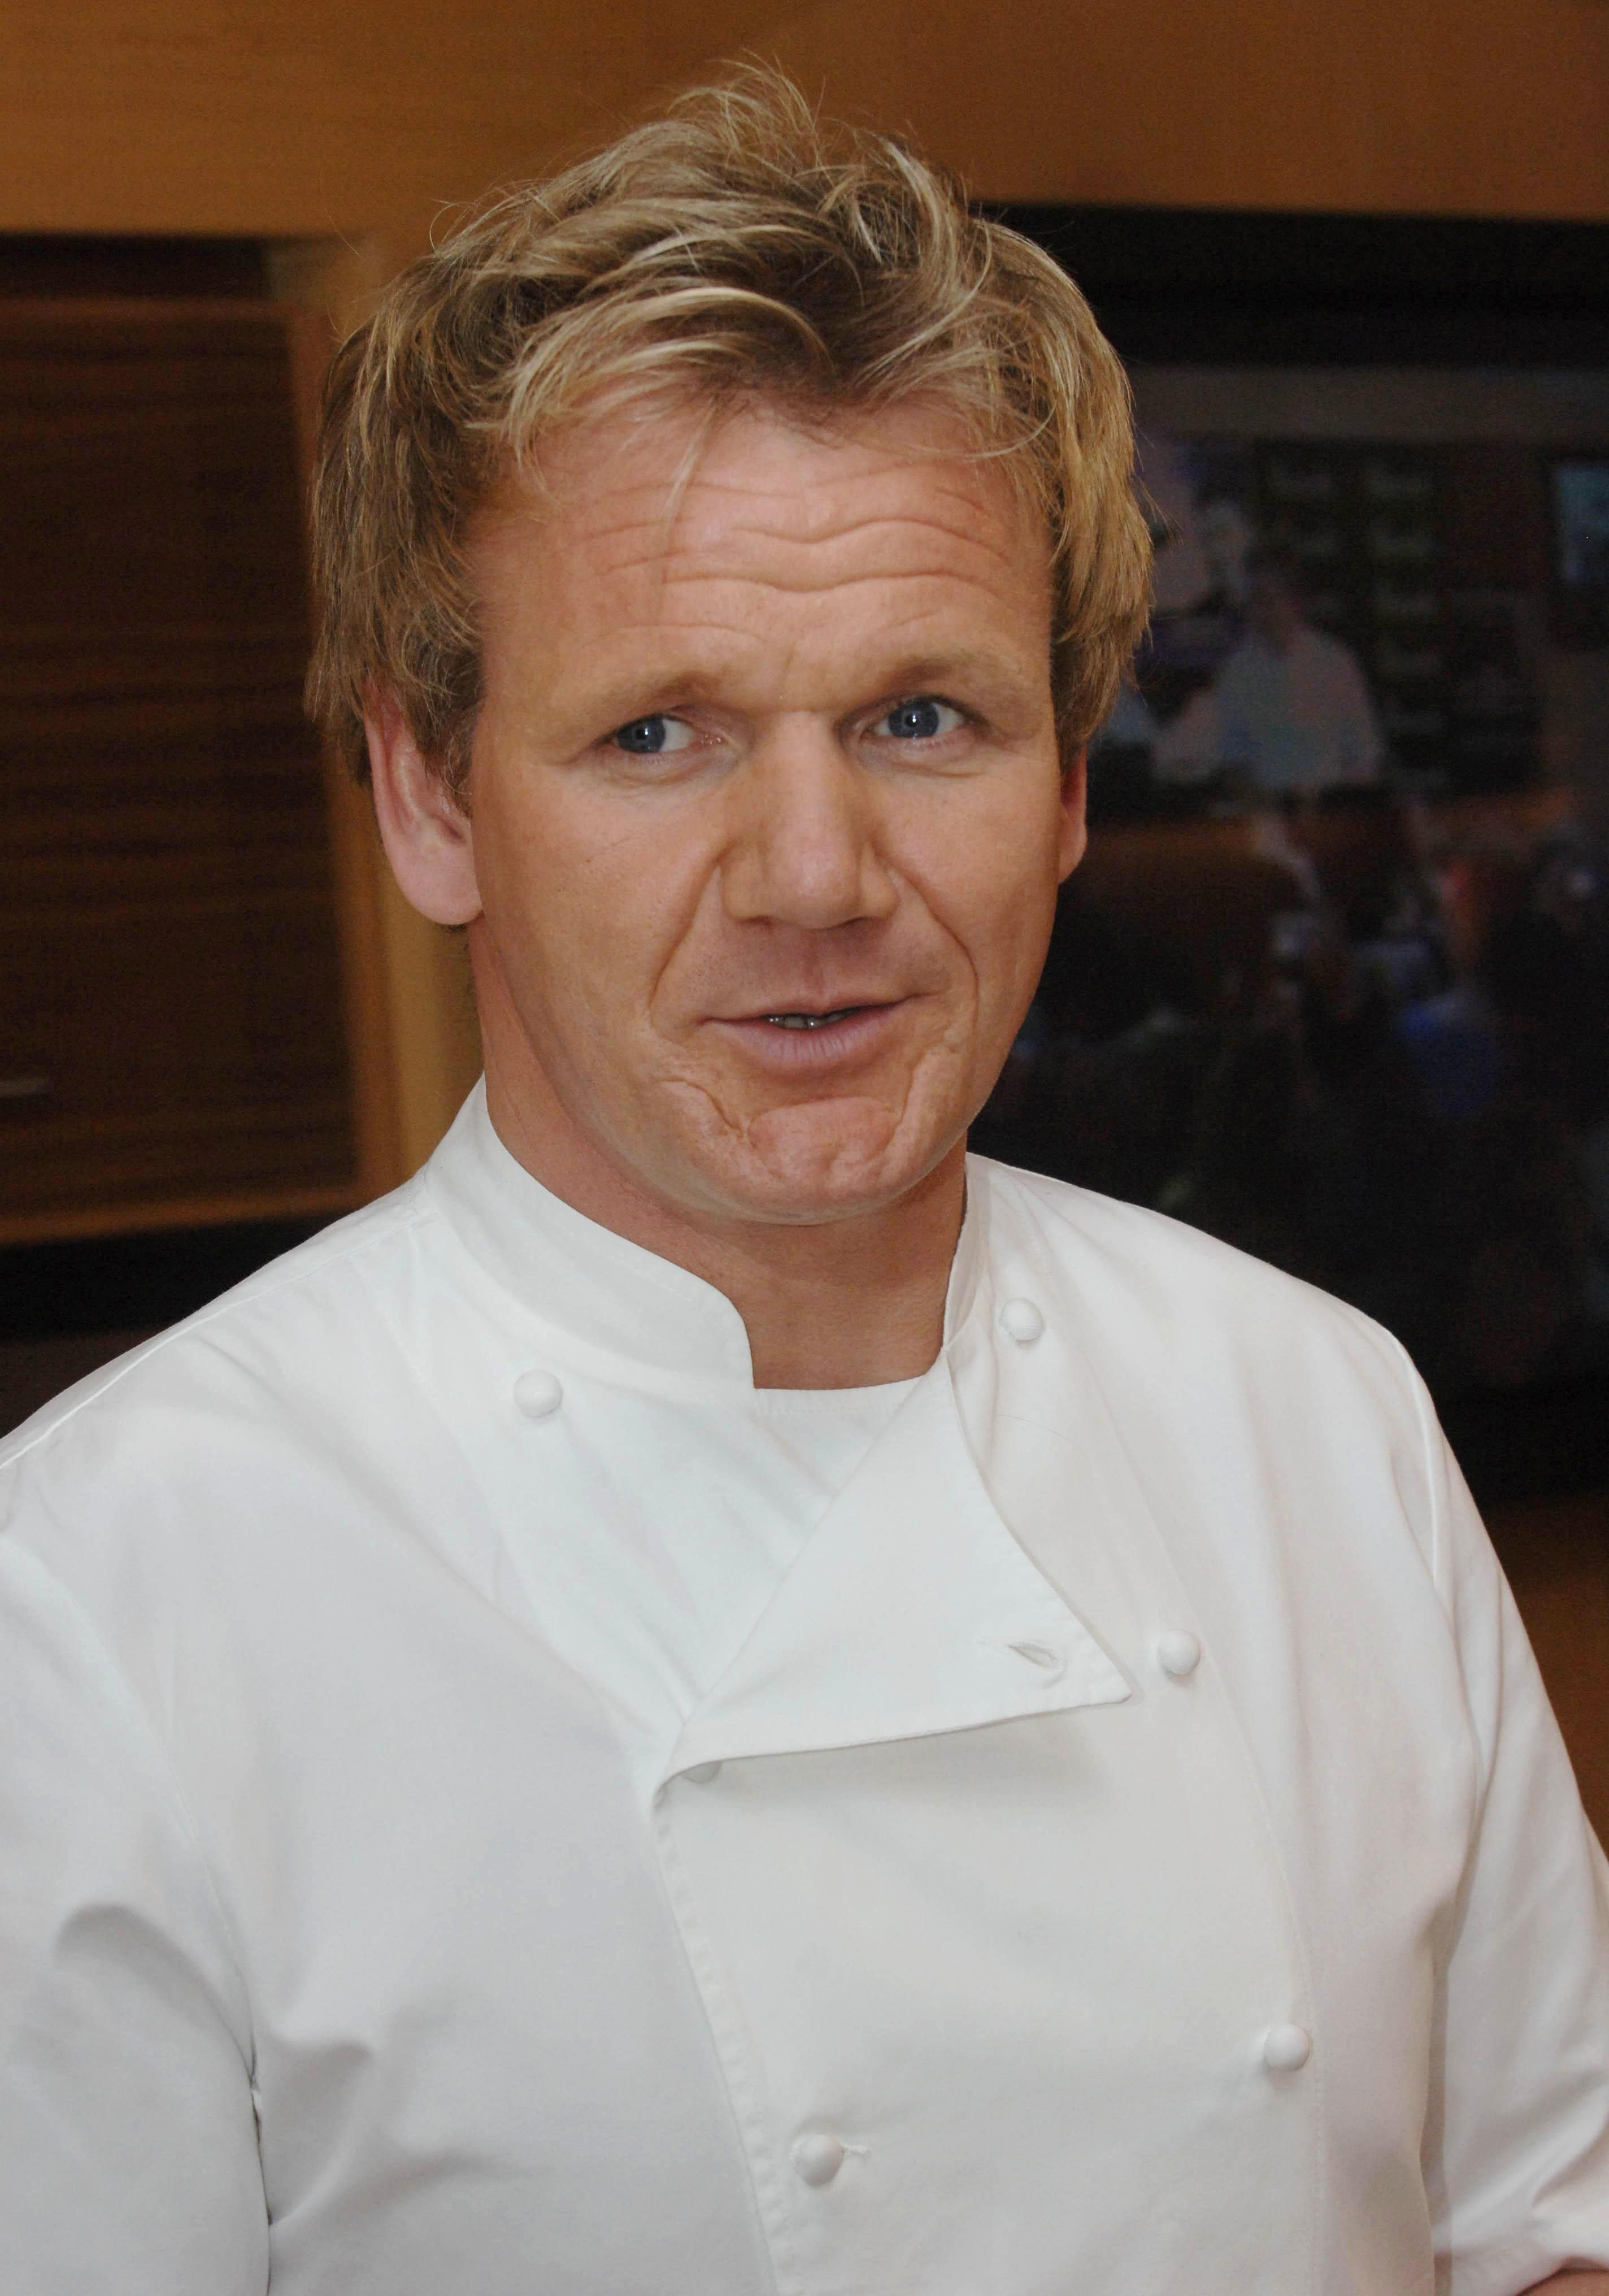 Ramsay faked a spearfishing scene